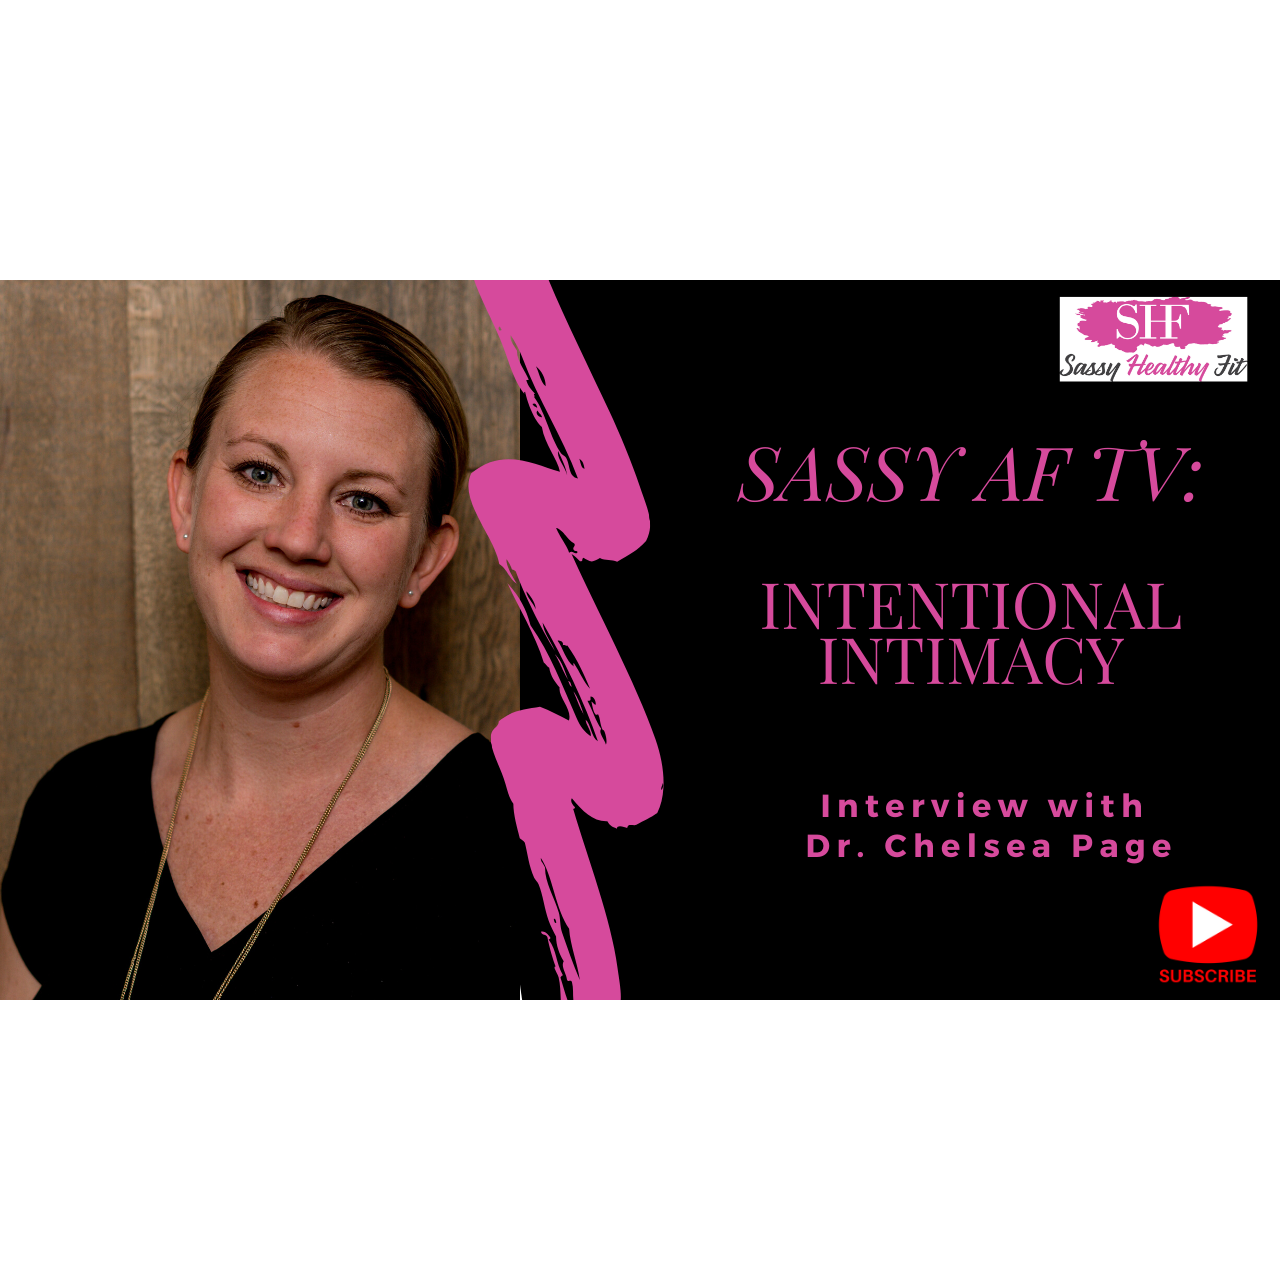 intentional intimacy with dr. chelsea page